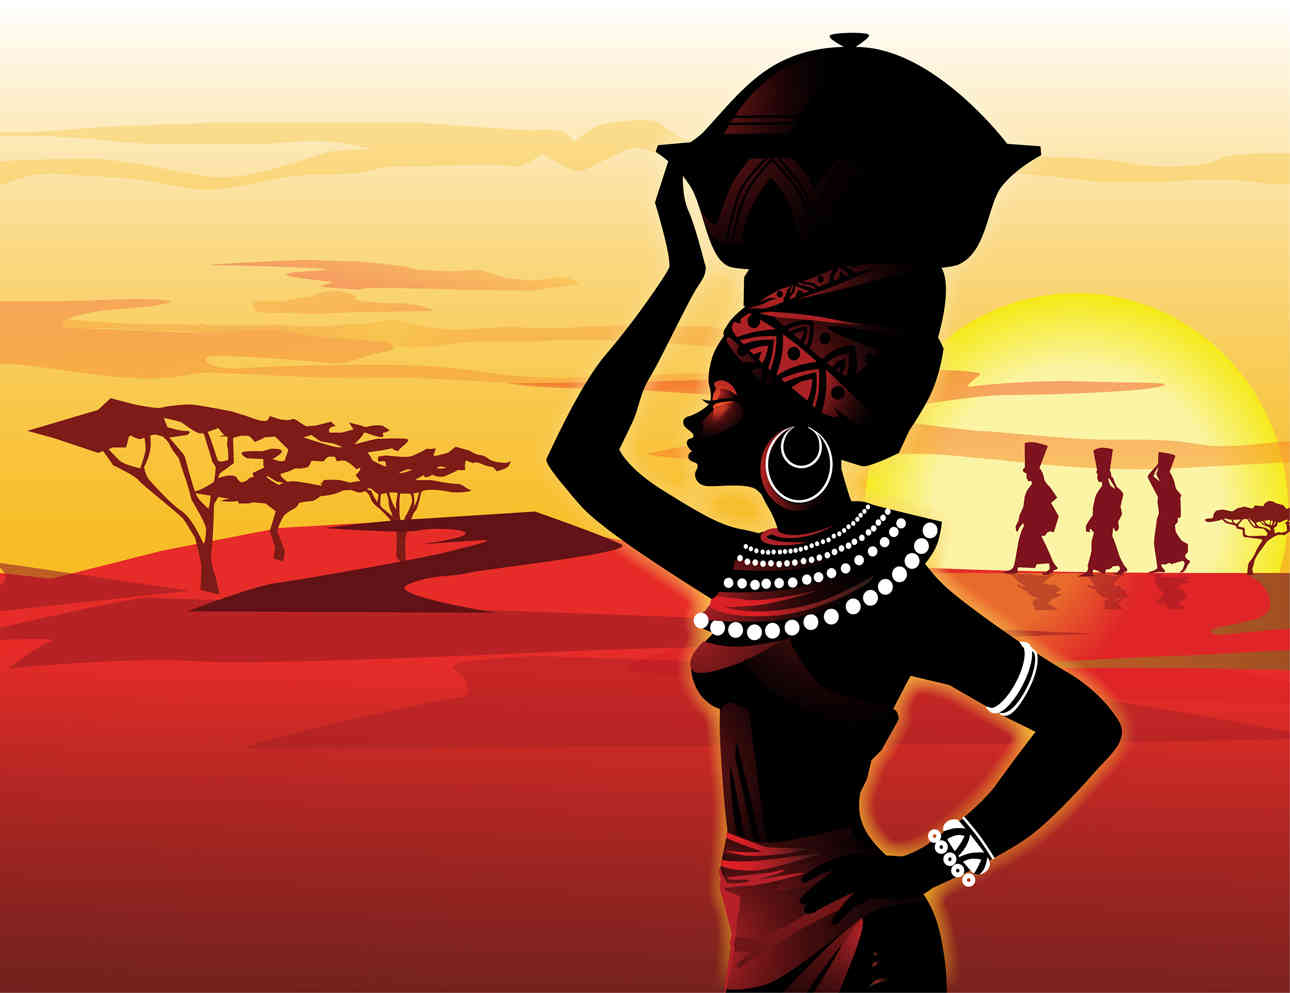 Things Fall Apart Wallpaper The Roots African Countries And Capitals All The Facts You Need